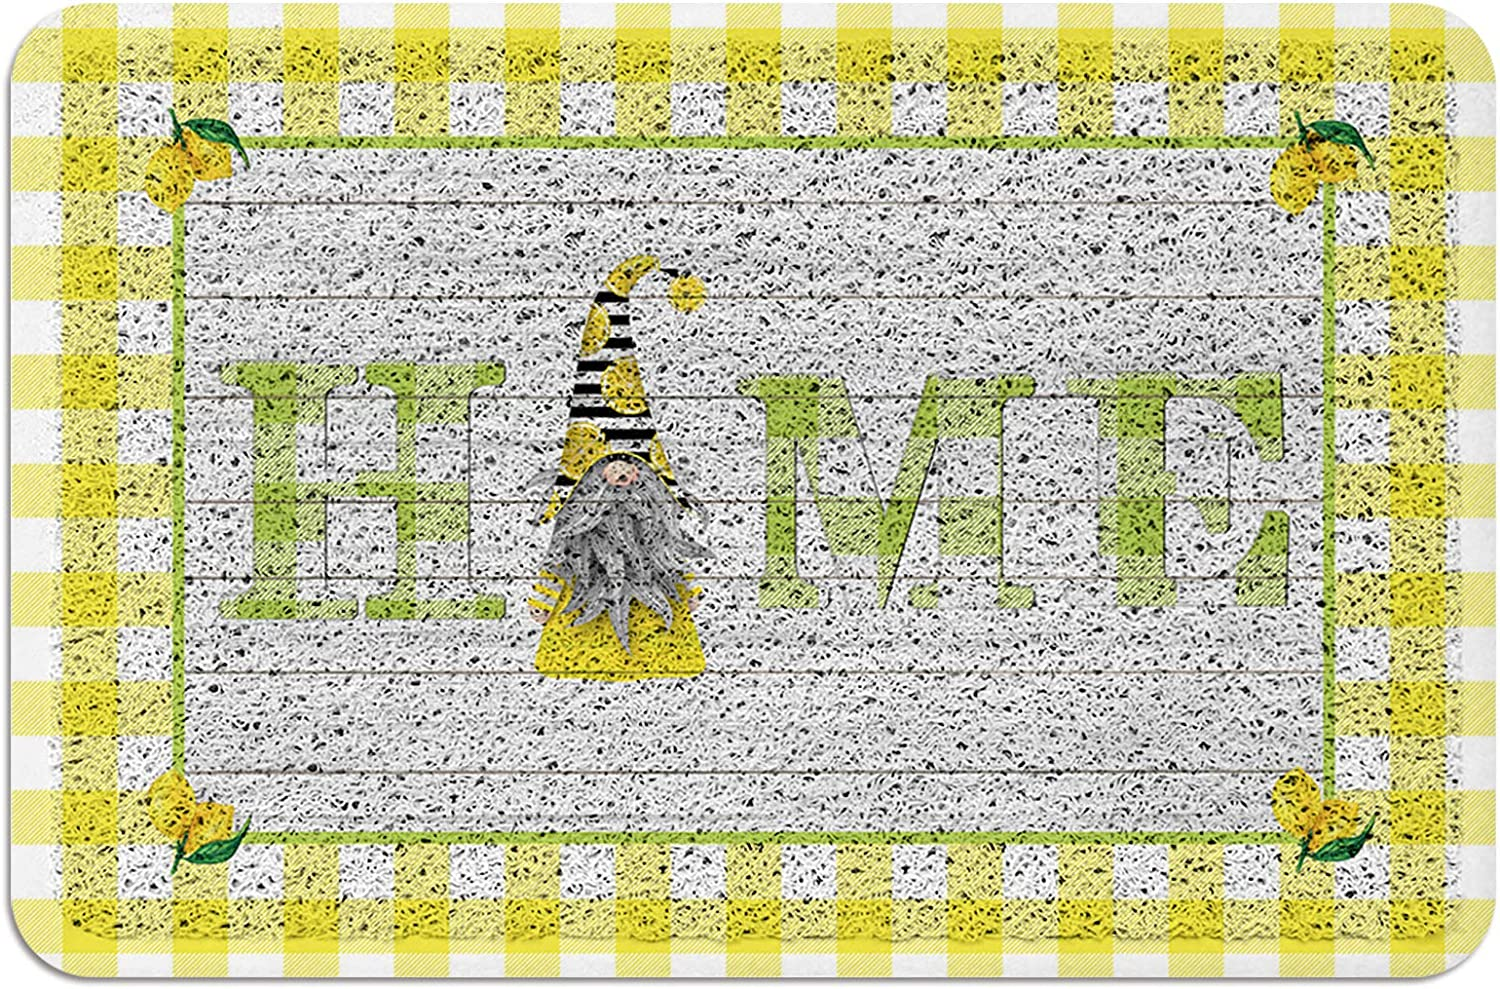 Doormat Absorbent PVC Shoes Scraper Fresh Max Limited Special Price 81% OFF Gnomes Home Lemons and